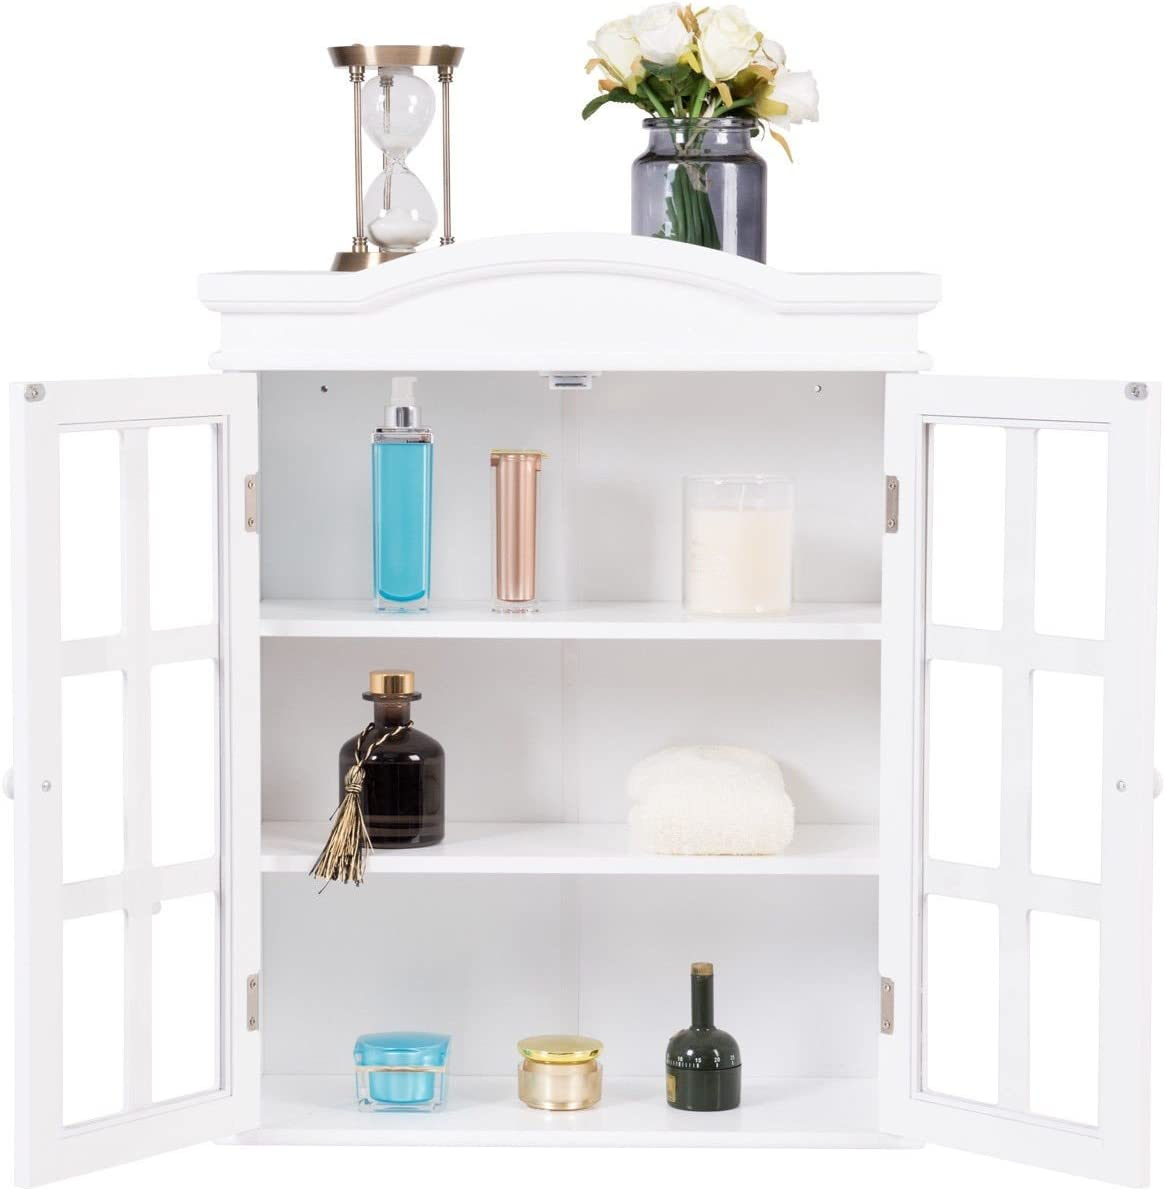 Wall Bathroom Storage Cabinet with Doors, Bathroom Fashions Cabinet Cupboard with White Finish and Elegant Design, Great Home Furniture, by Waterjoy